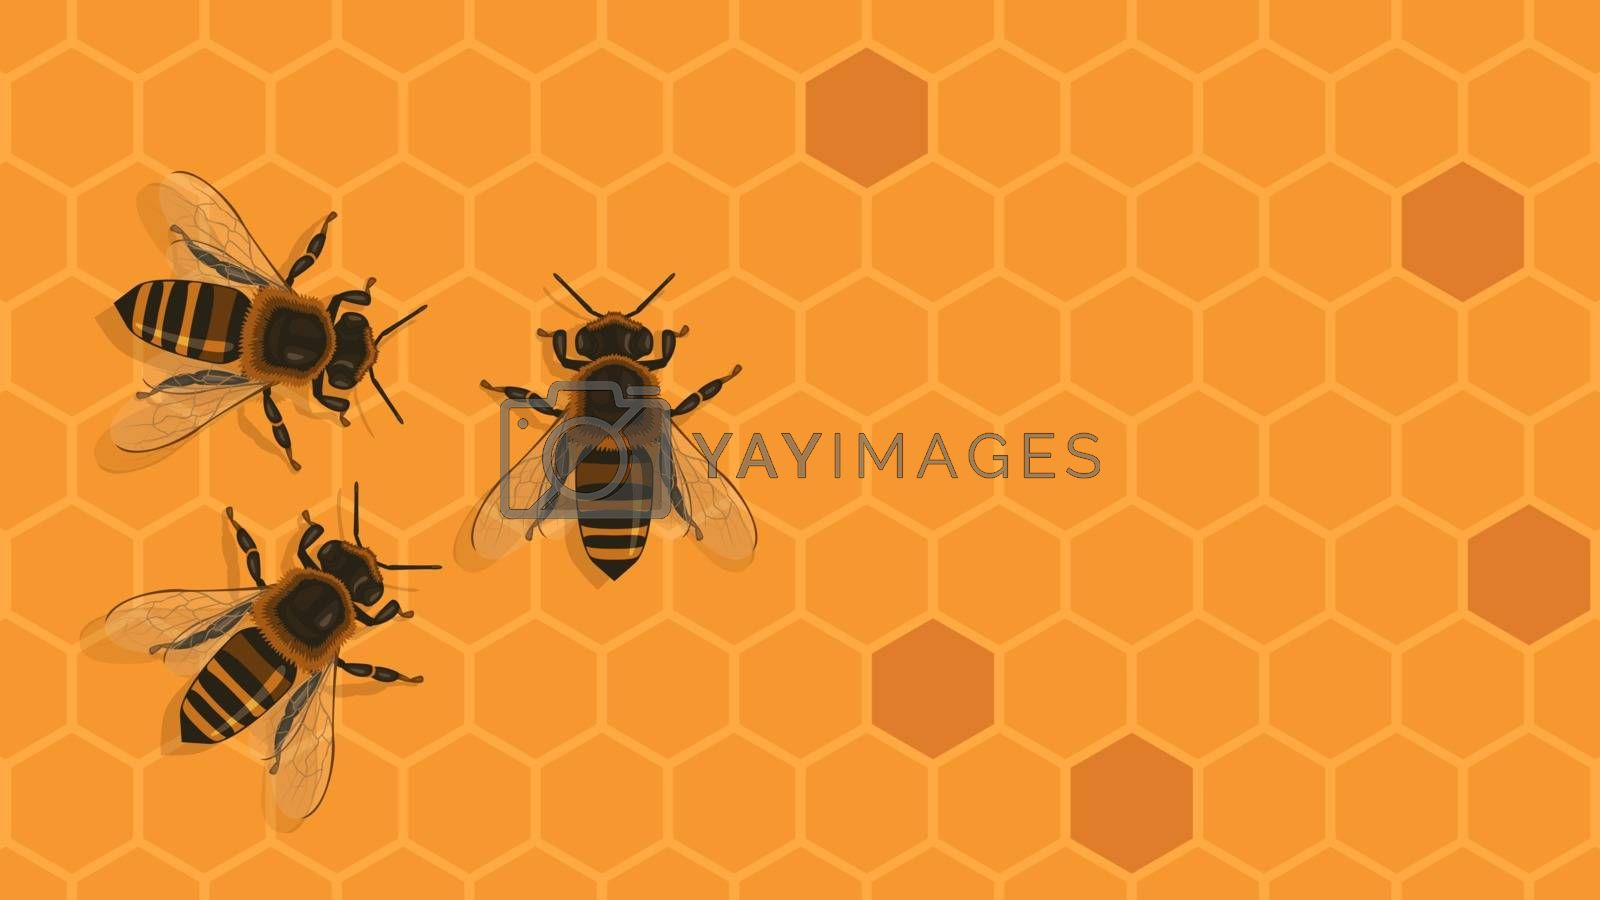 Detailed flat vector illustration of bees on top of a honeycomb background. World Bee Day.